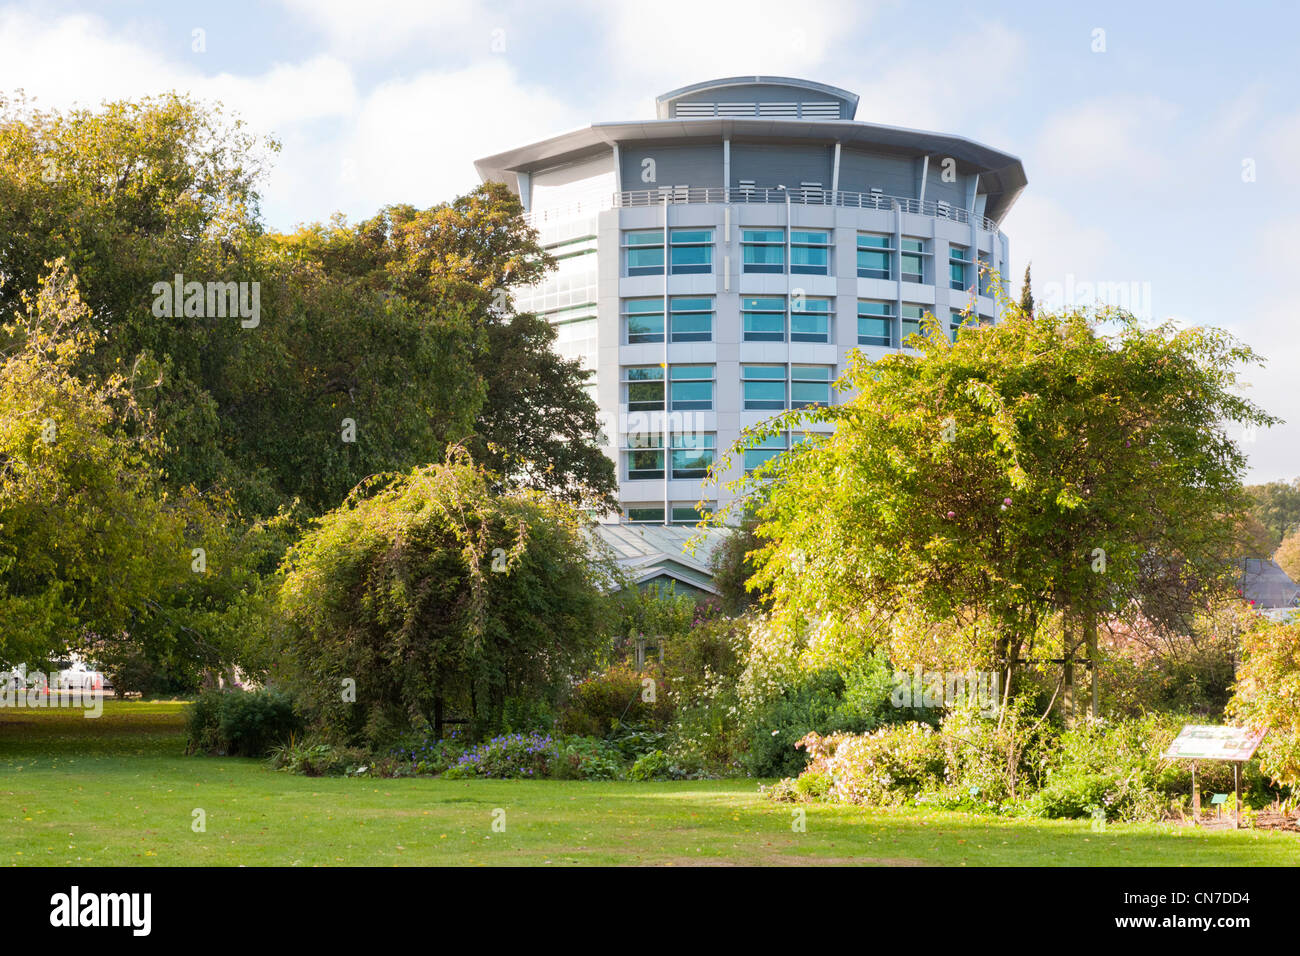 Christchurch Womens Hospital as it overlooks Hagley Park, Christchurch, New Zealand. - Stock Image